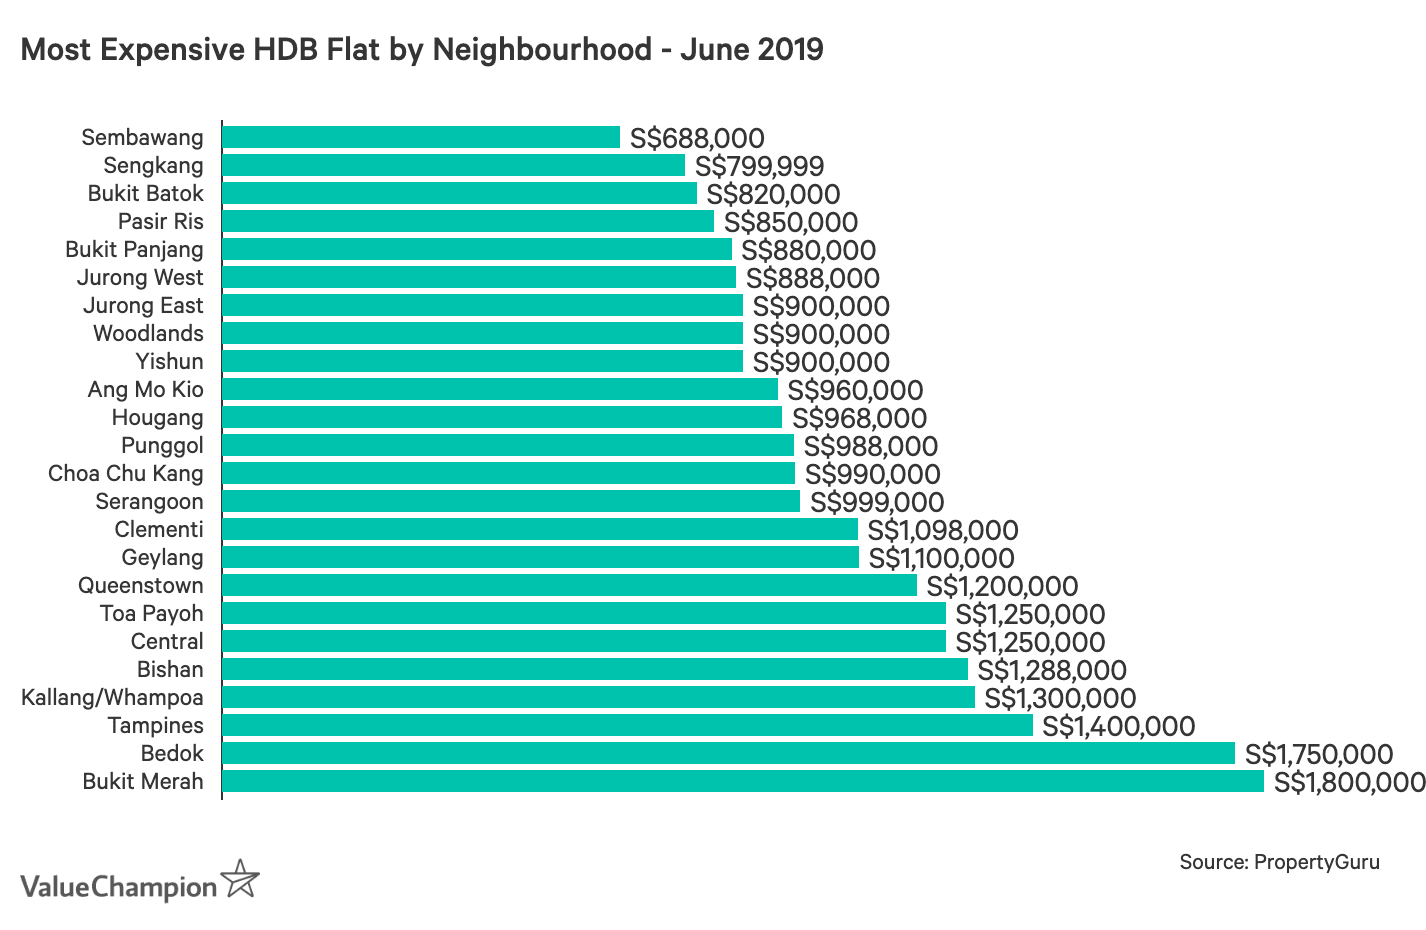 Most Expensive HDB Flat by Neighbourhood - June 2019